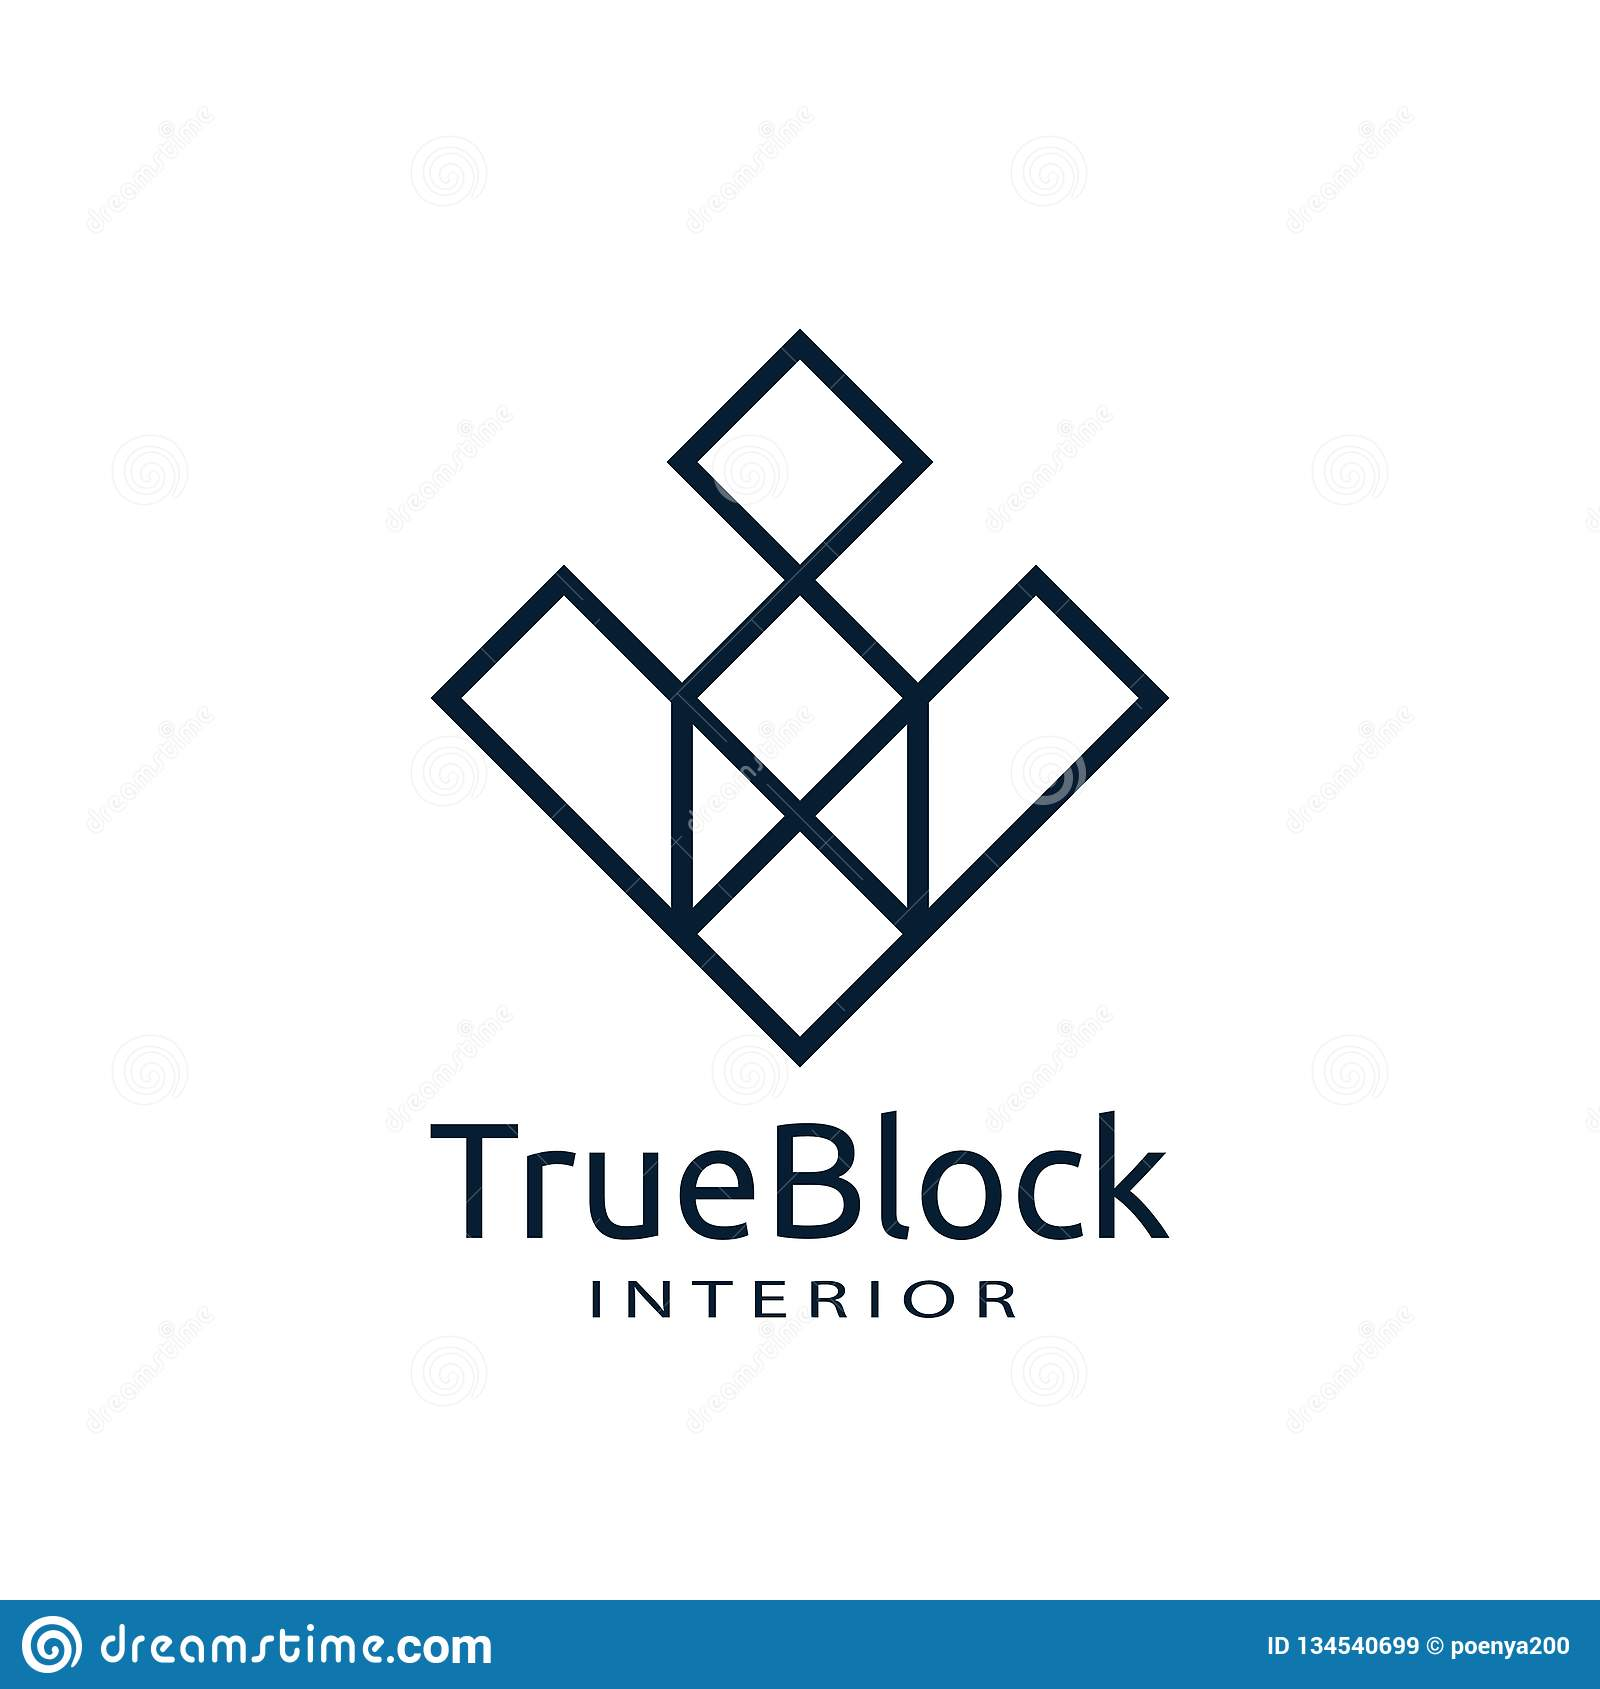 tile wall logo icon for carpet, floor, ceramic industry. hexagon square abstract symbol. minimal sign concept design template